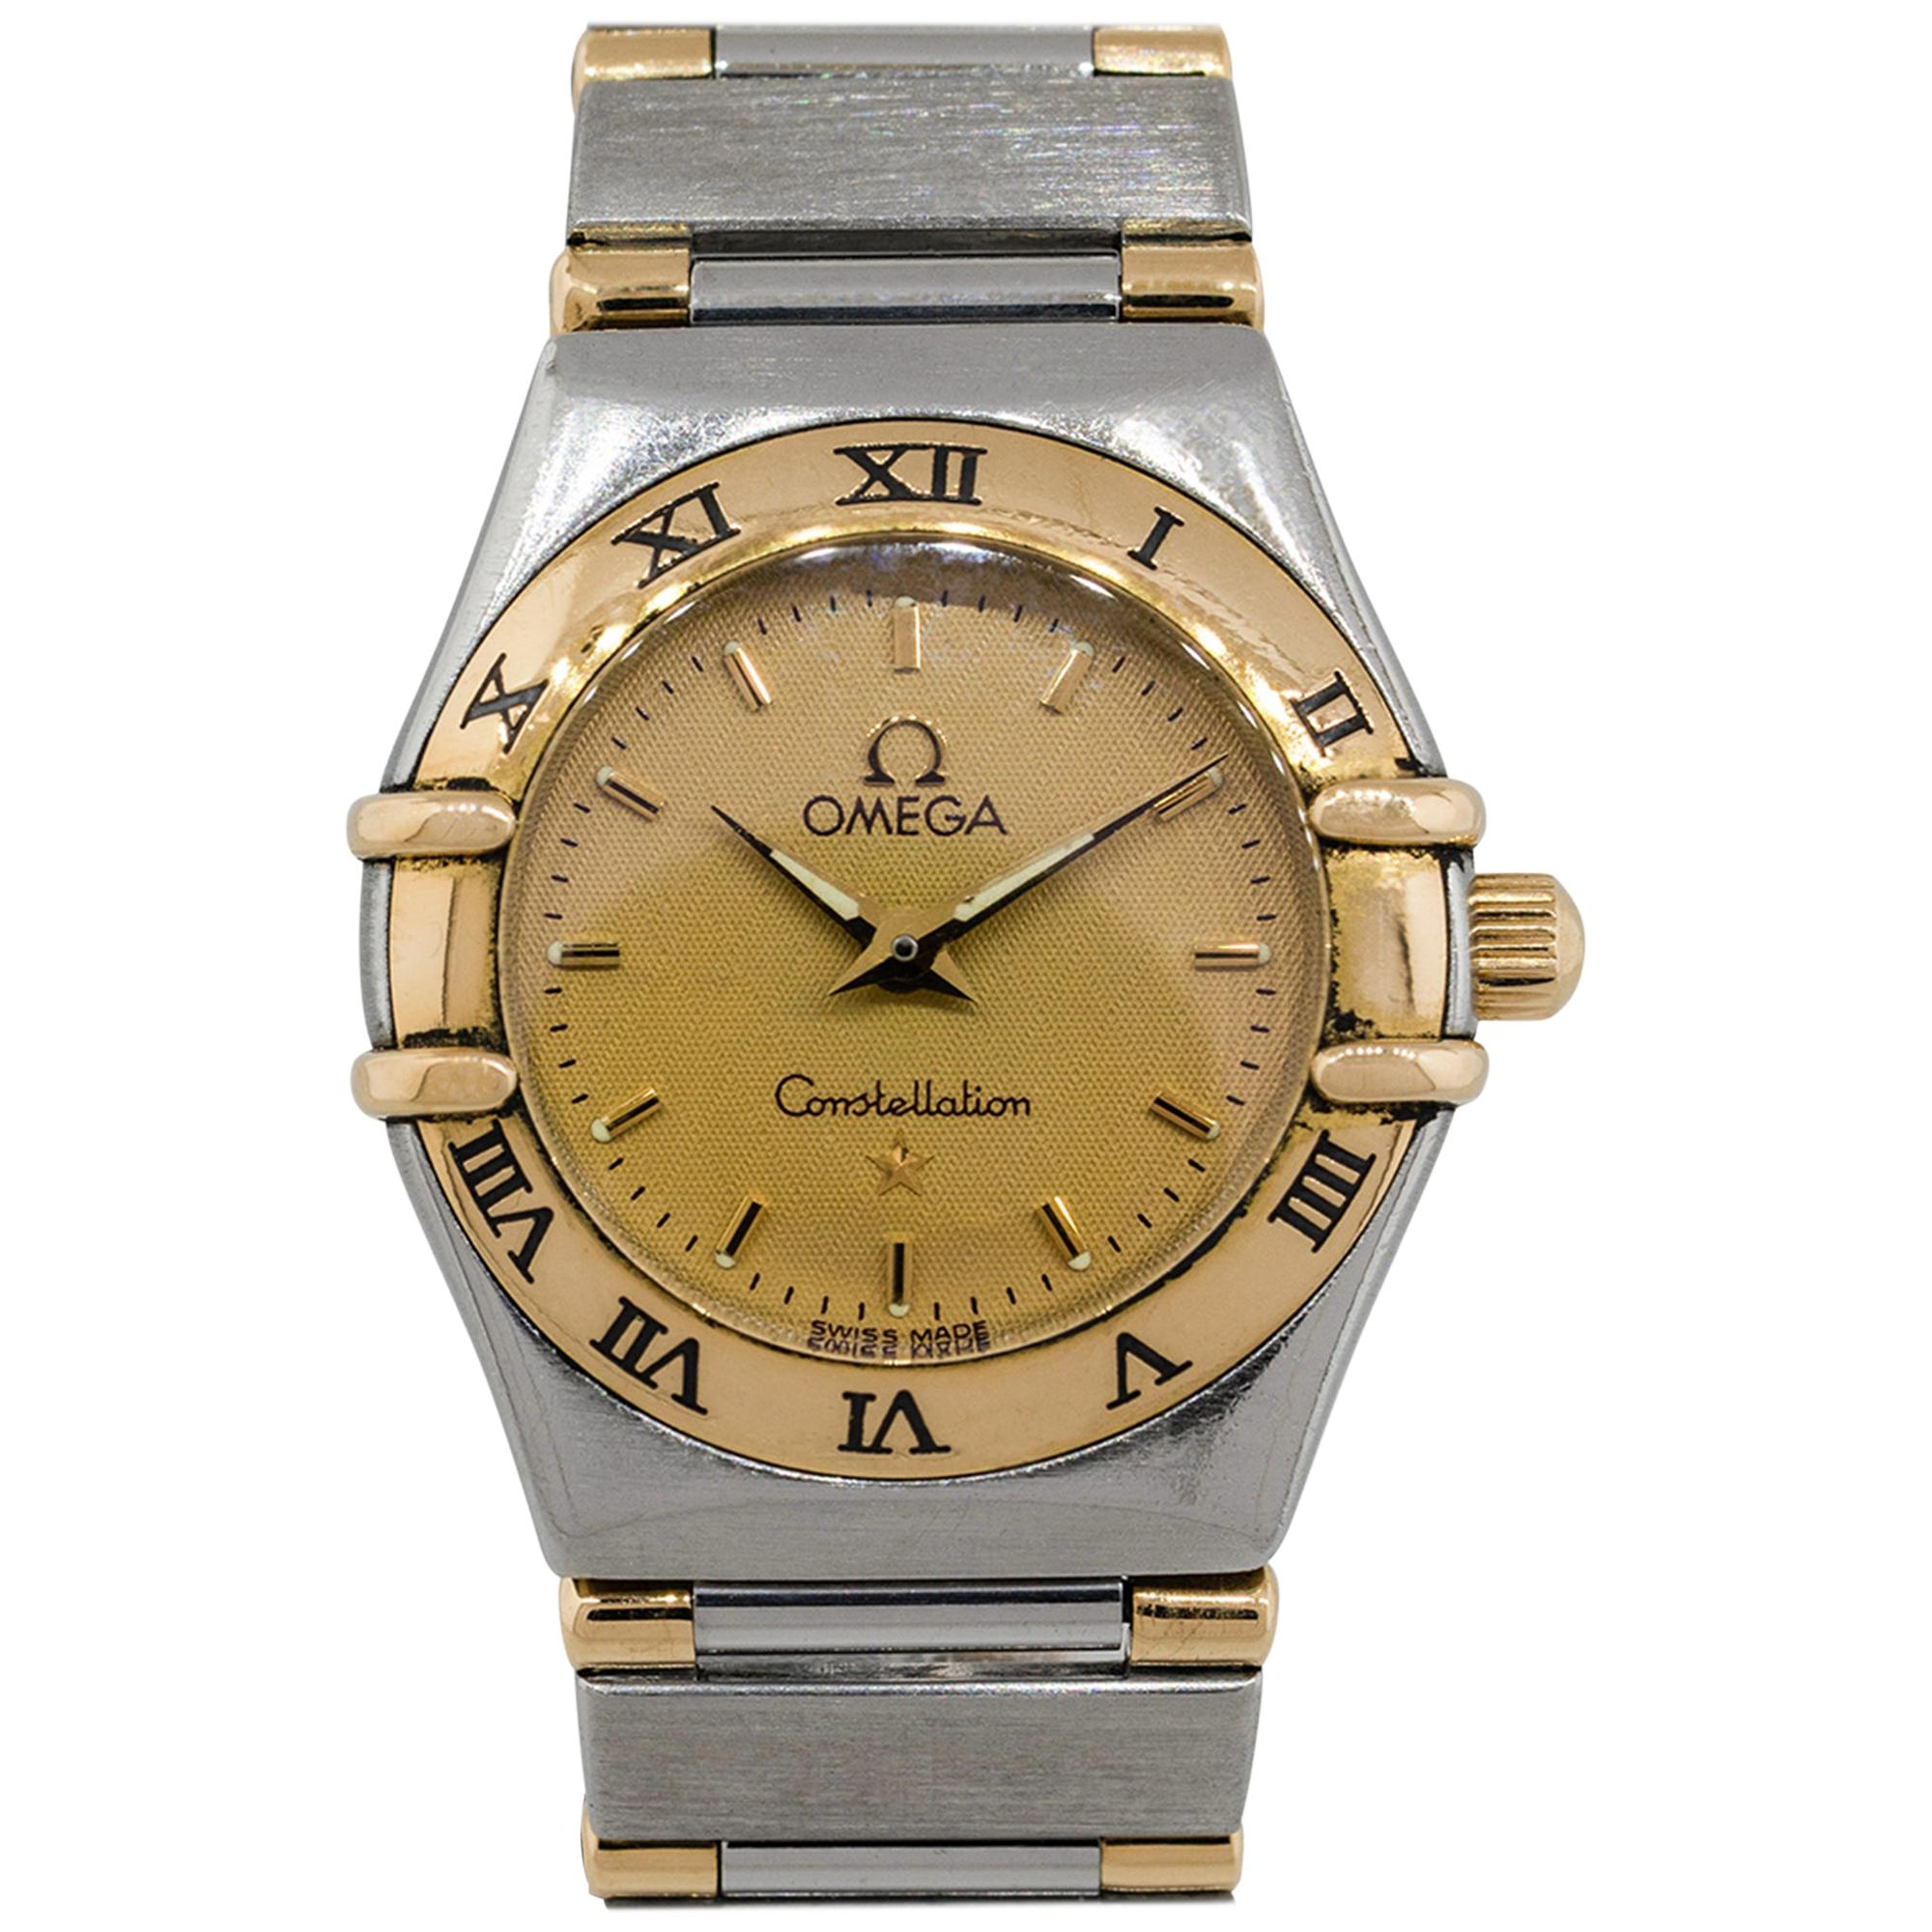 Omega Constellation Two-Tone Gold Dial Watch